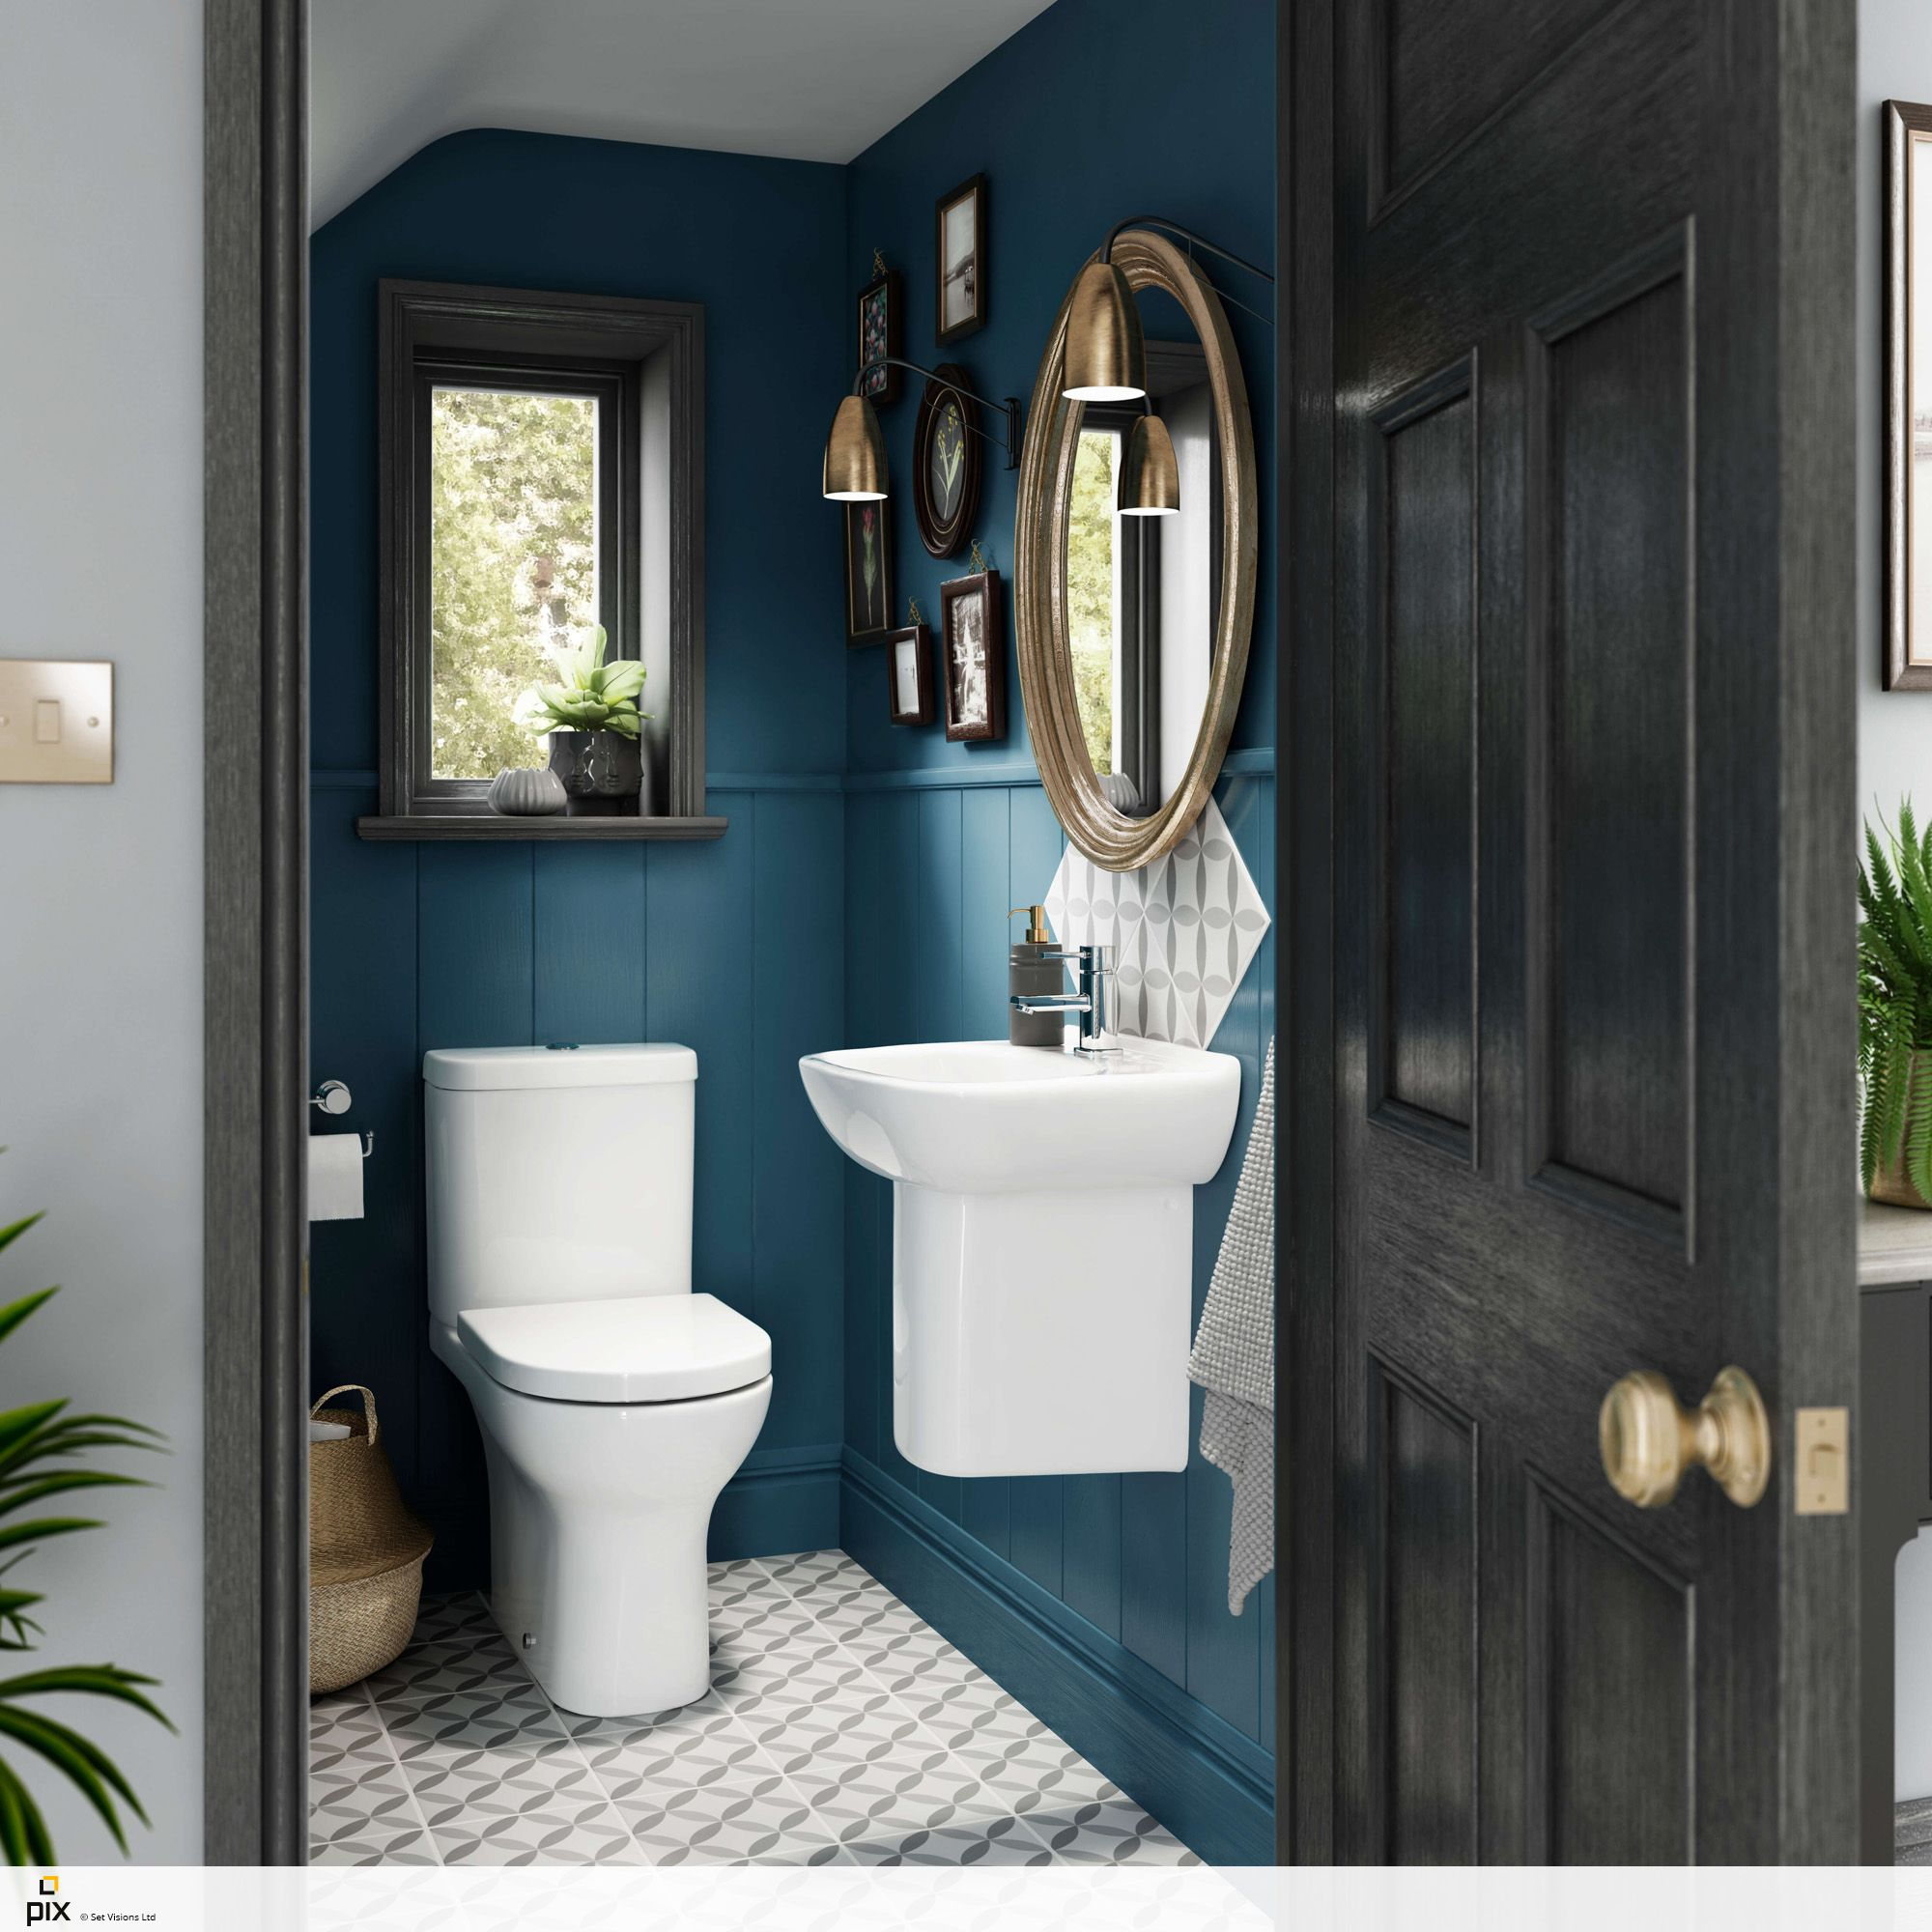 Quirky And Compact Under Stairs Cloakroom. The Deep Blue